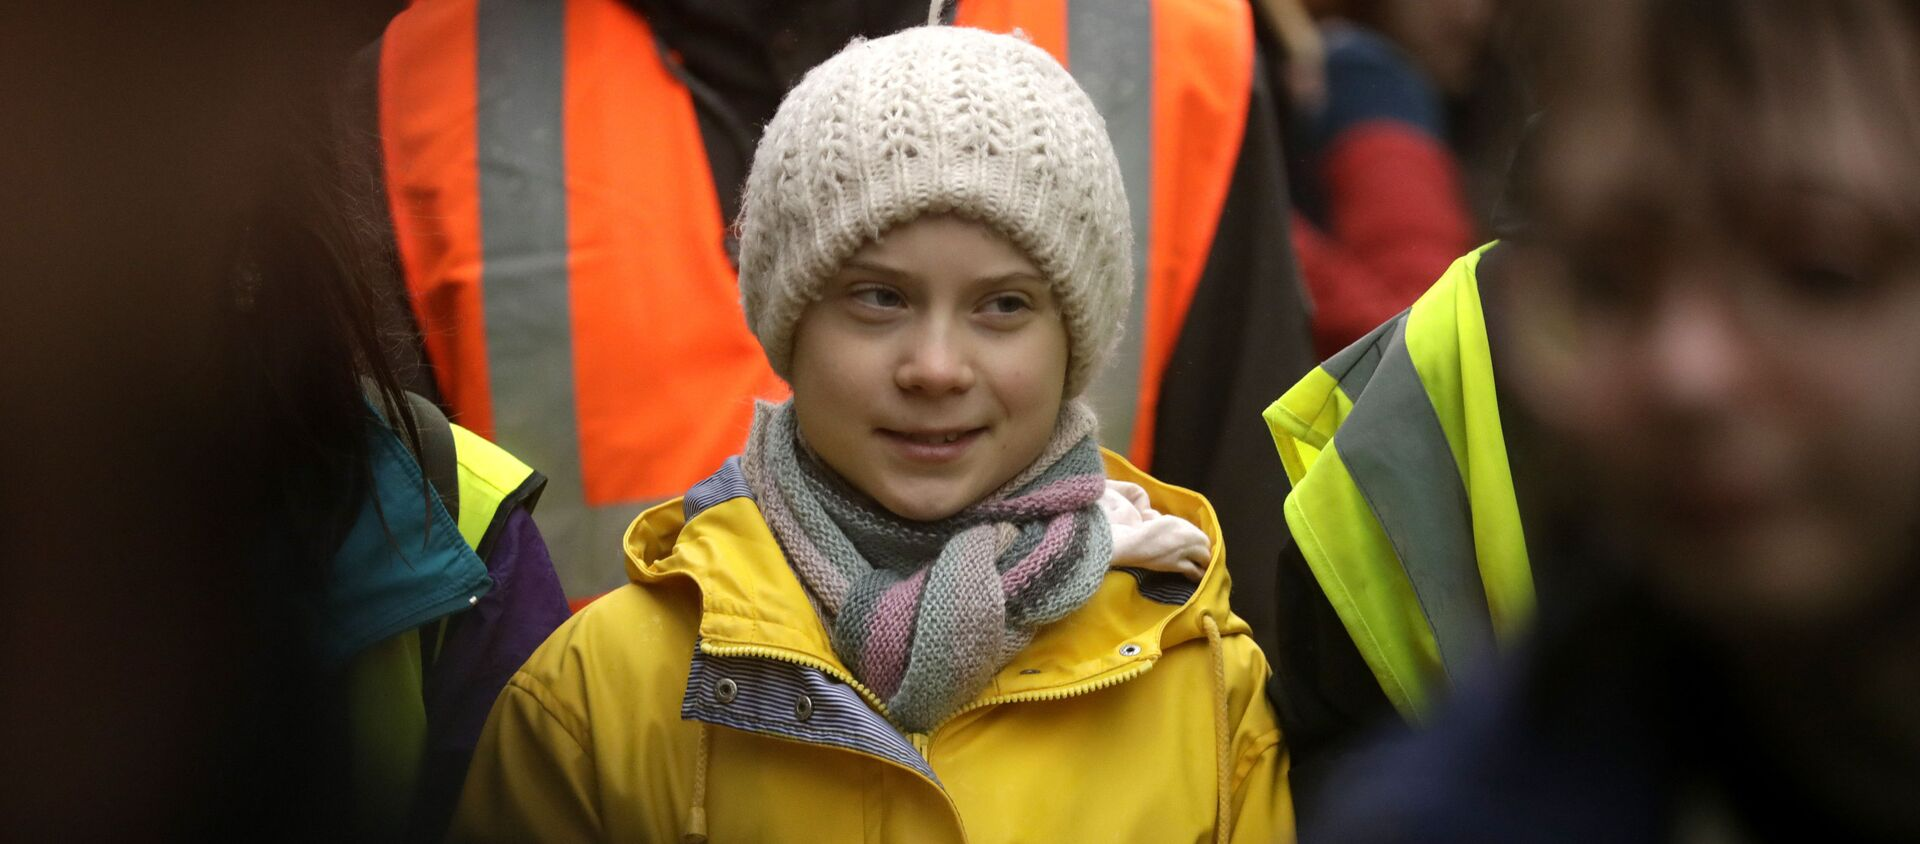 Climate activist Greta Thunberg, from Sweden marches with other demonstrators as she participates in a school strike climate protest in Bristol, south west England, Friday, Feb. 28, 2020. - Sputnik Italia, 1920, 19.04.2021